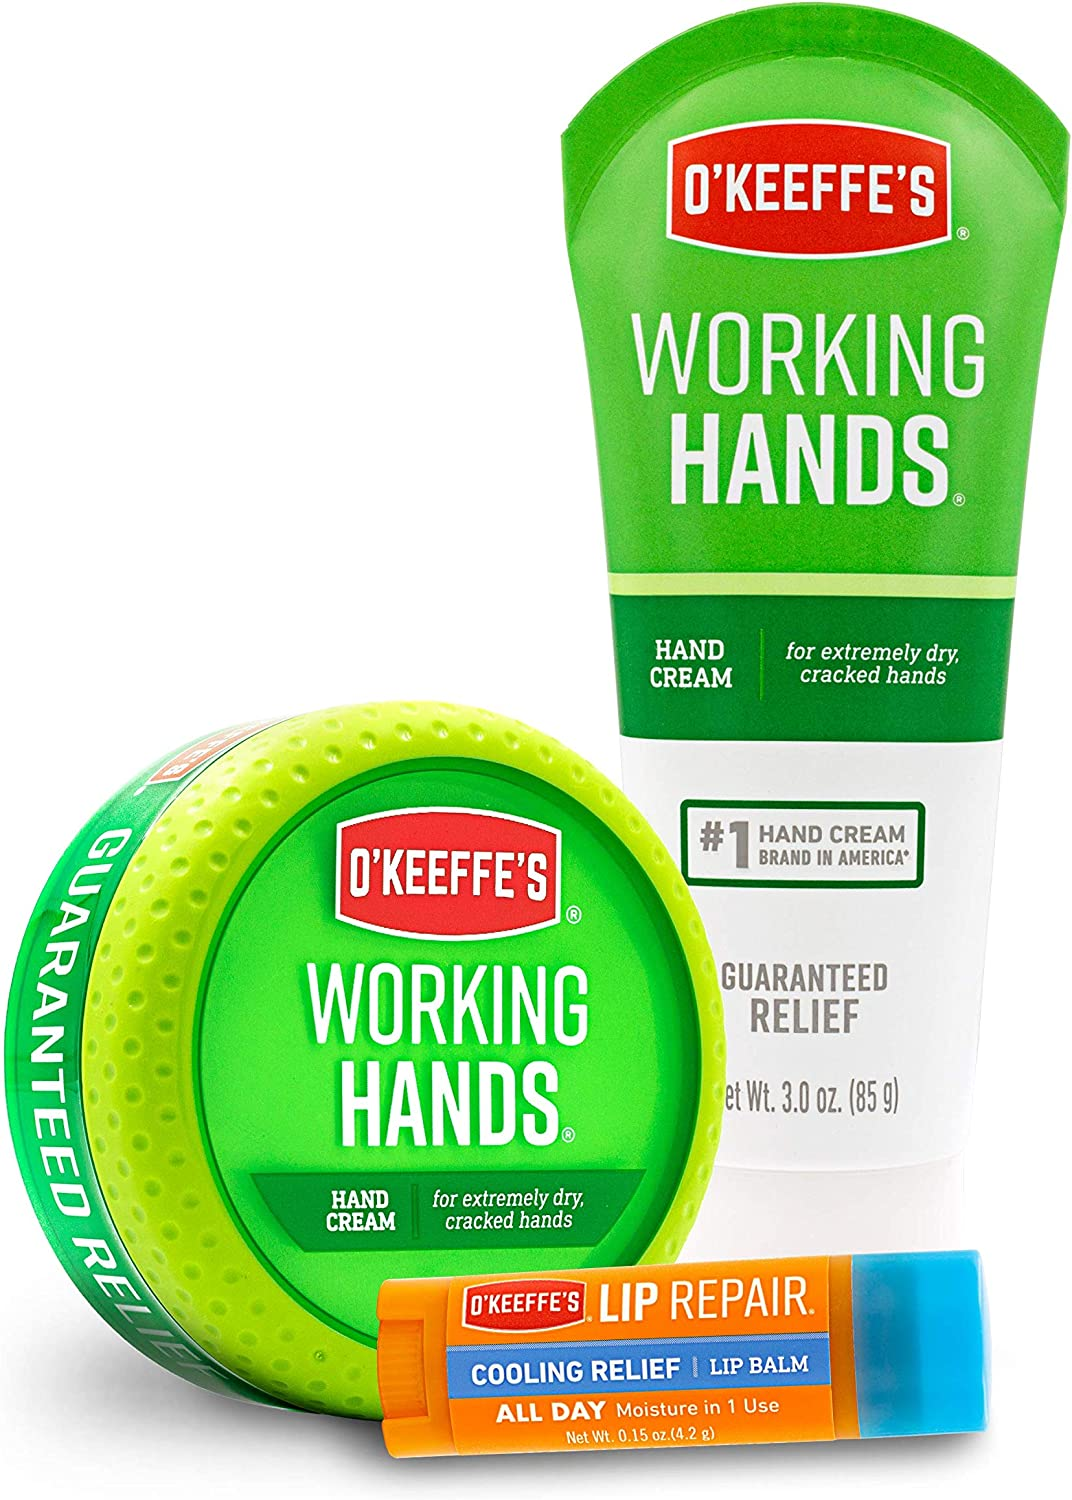 O'Keeffe's Working Hands & Lip Repair Variety Pack: Home Improvement